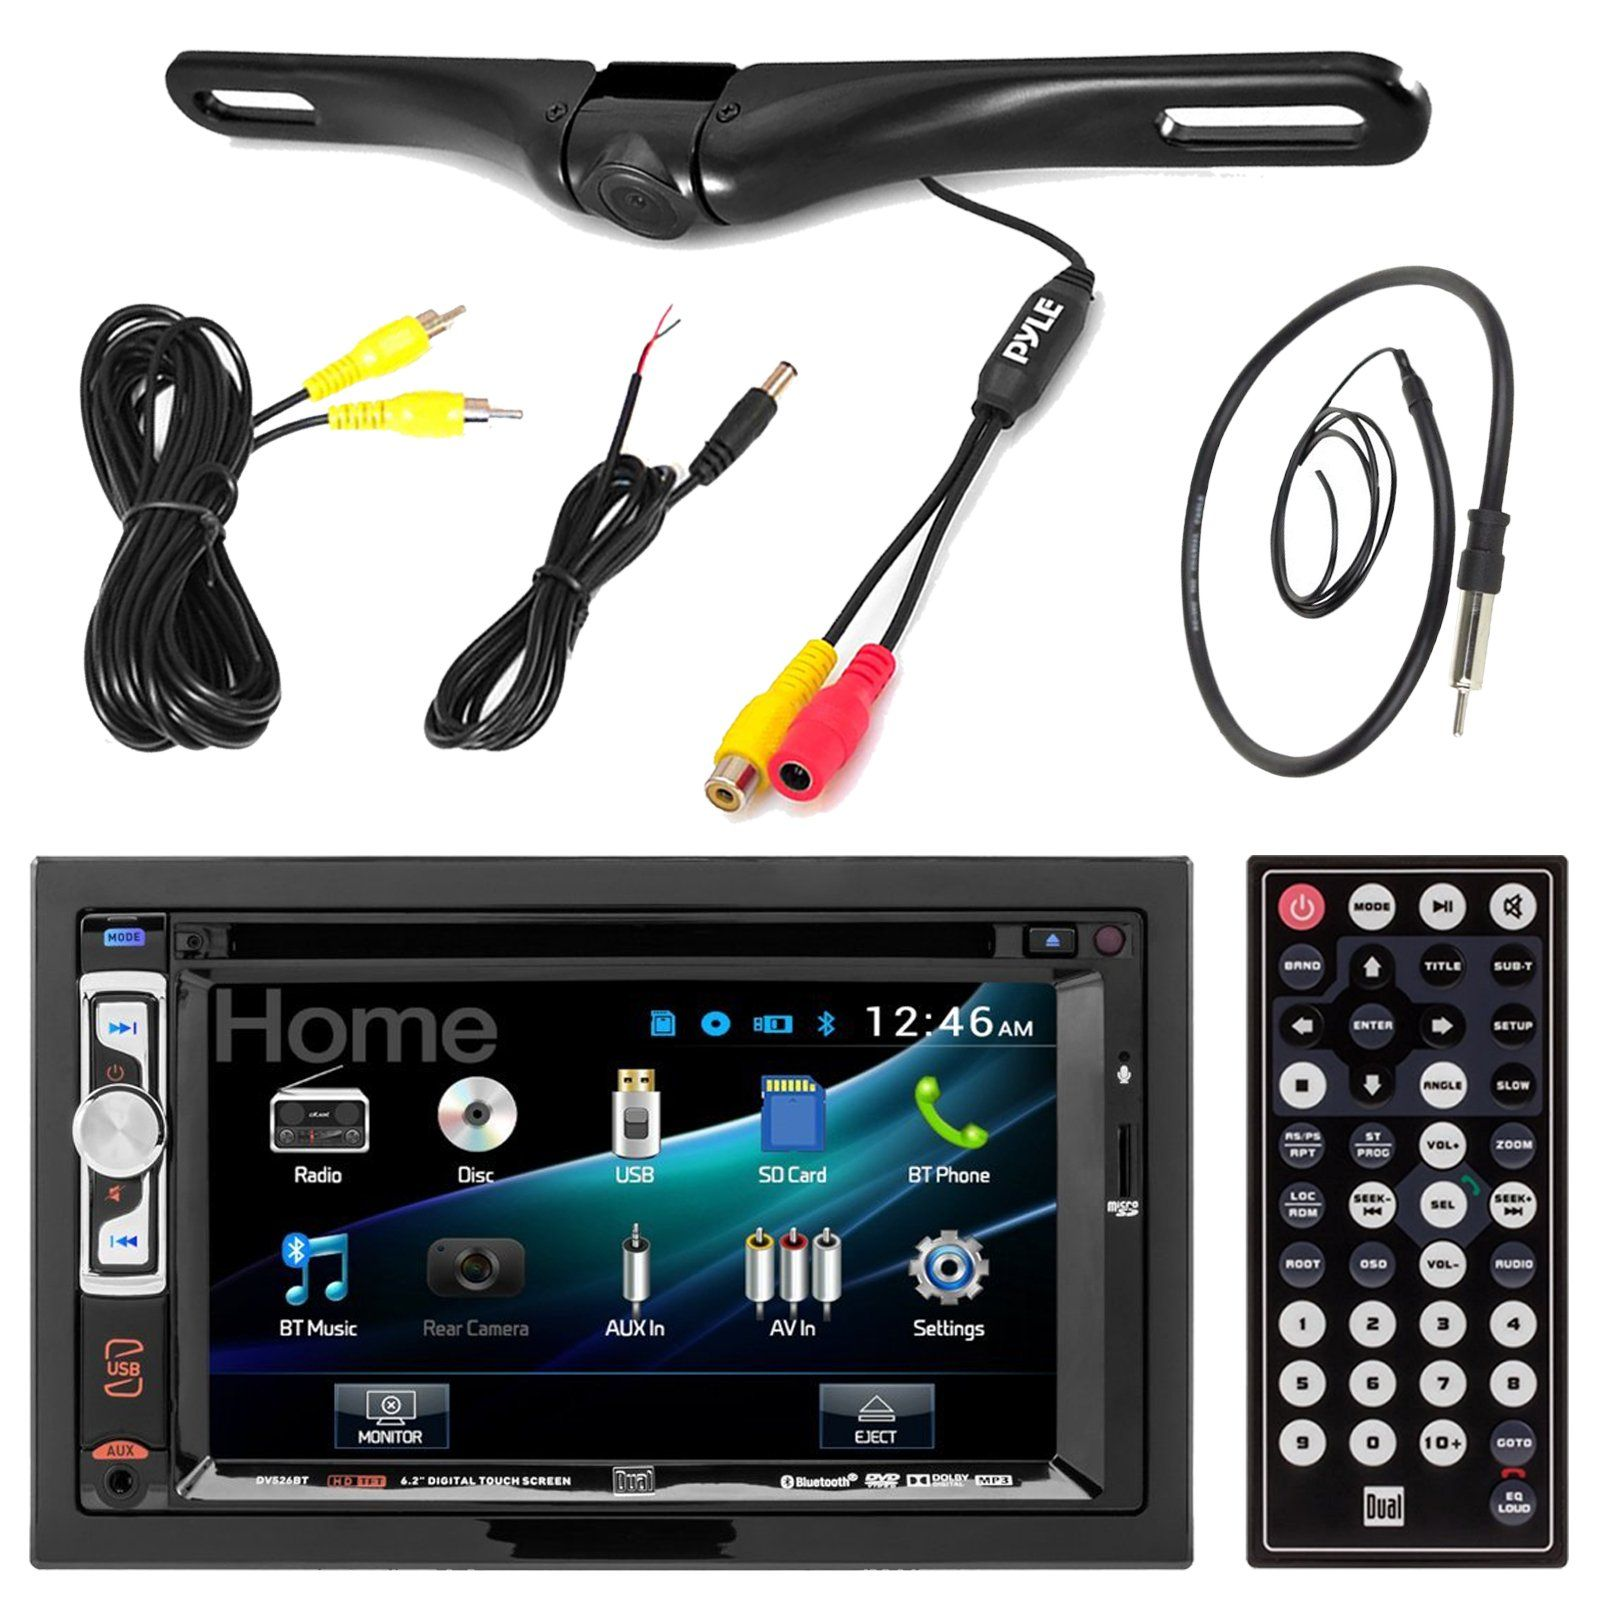 Of the line double din touch screen car stereos from pioneer and sony - Dual Dv526bt 6 2 Inch Touchscreen Double Din Cd Dvd Player Car Stereo Receiver Bundle